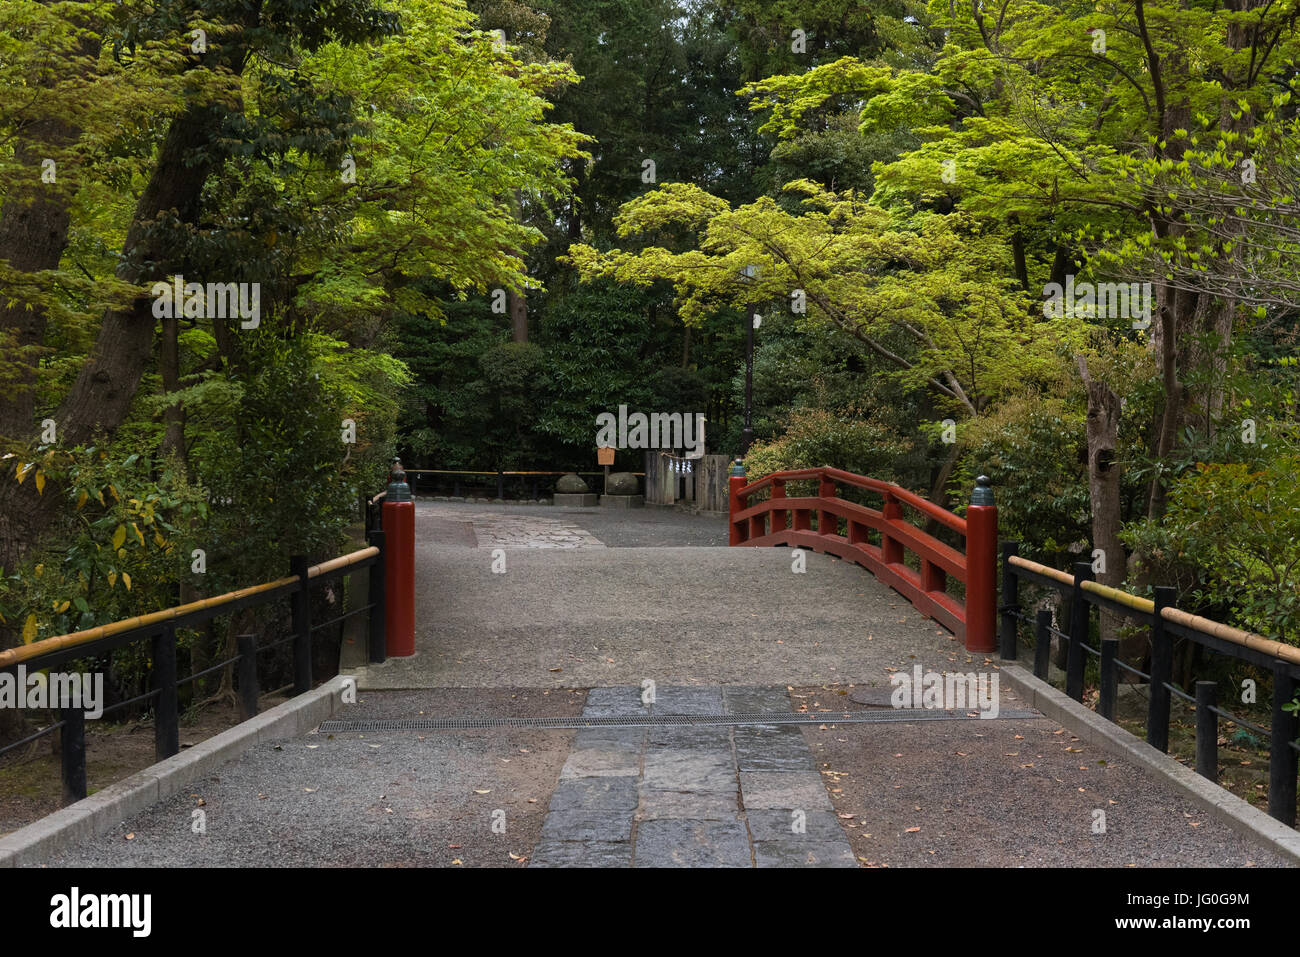 Footbridge leading to Japanese gardens in a park - Stock Image